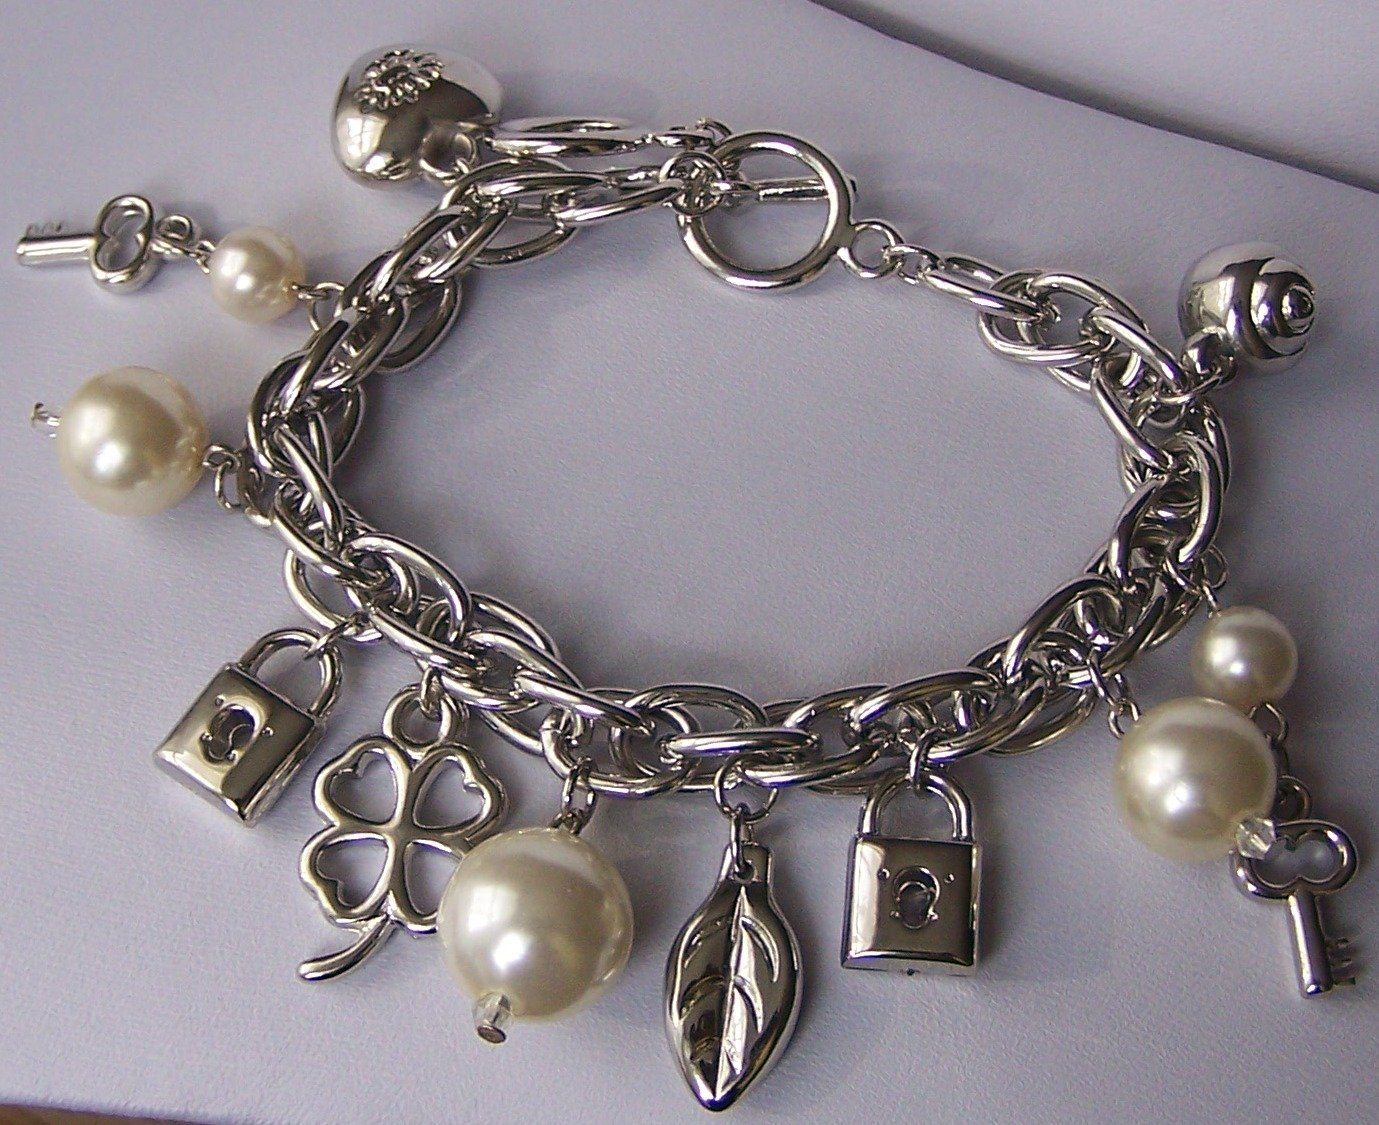 Beige Pearl Key Good Luck Shamrock Lock Heart Love Valentines Day Charm Bracelet